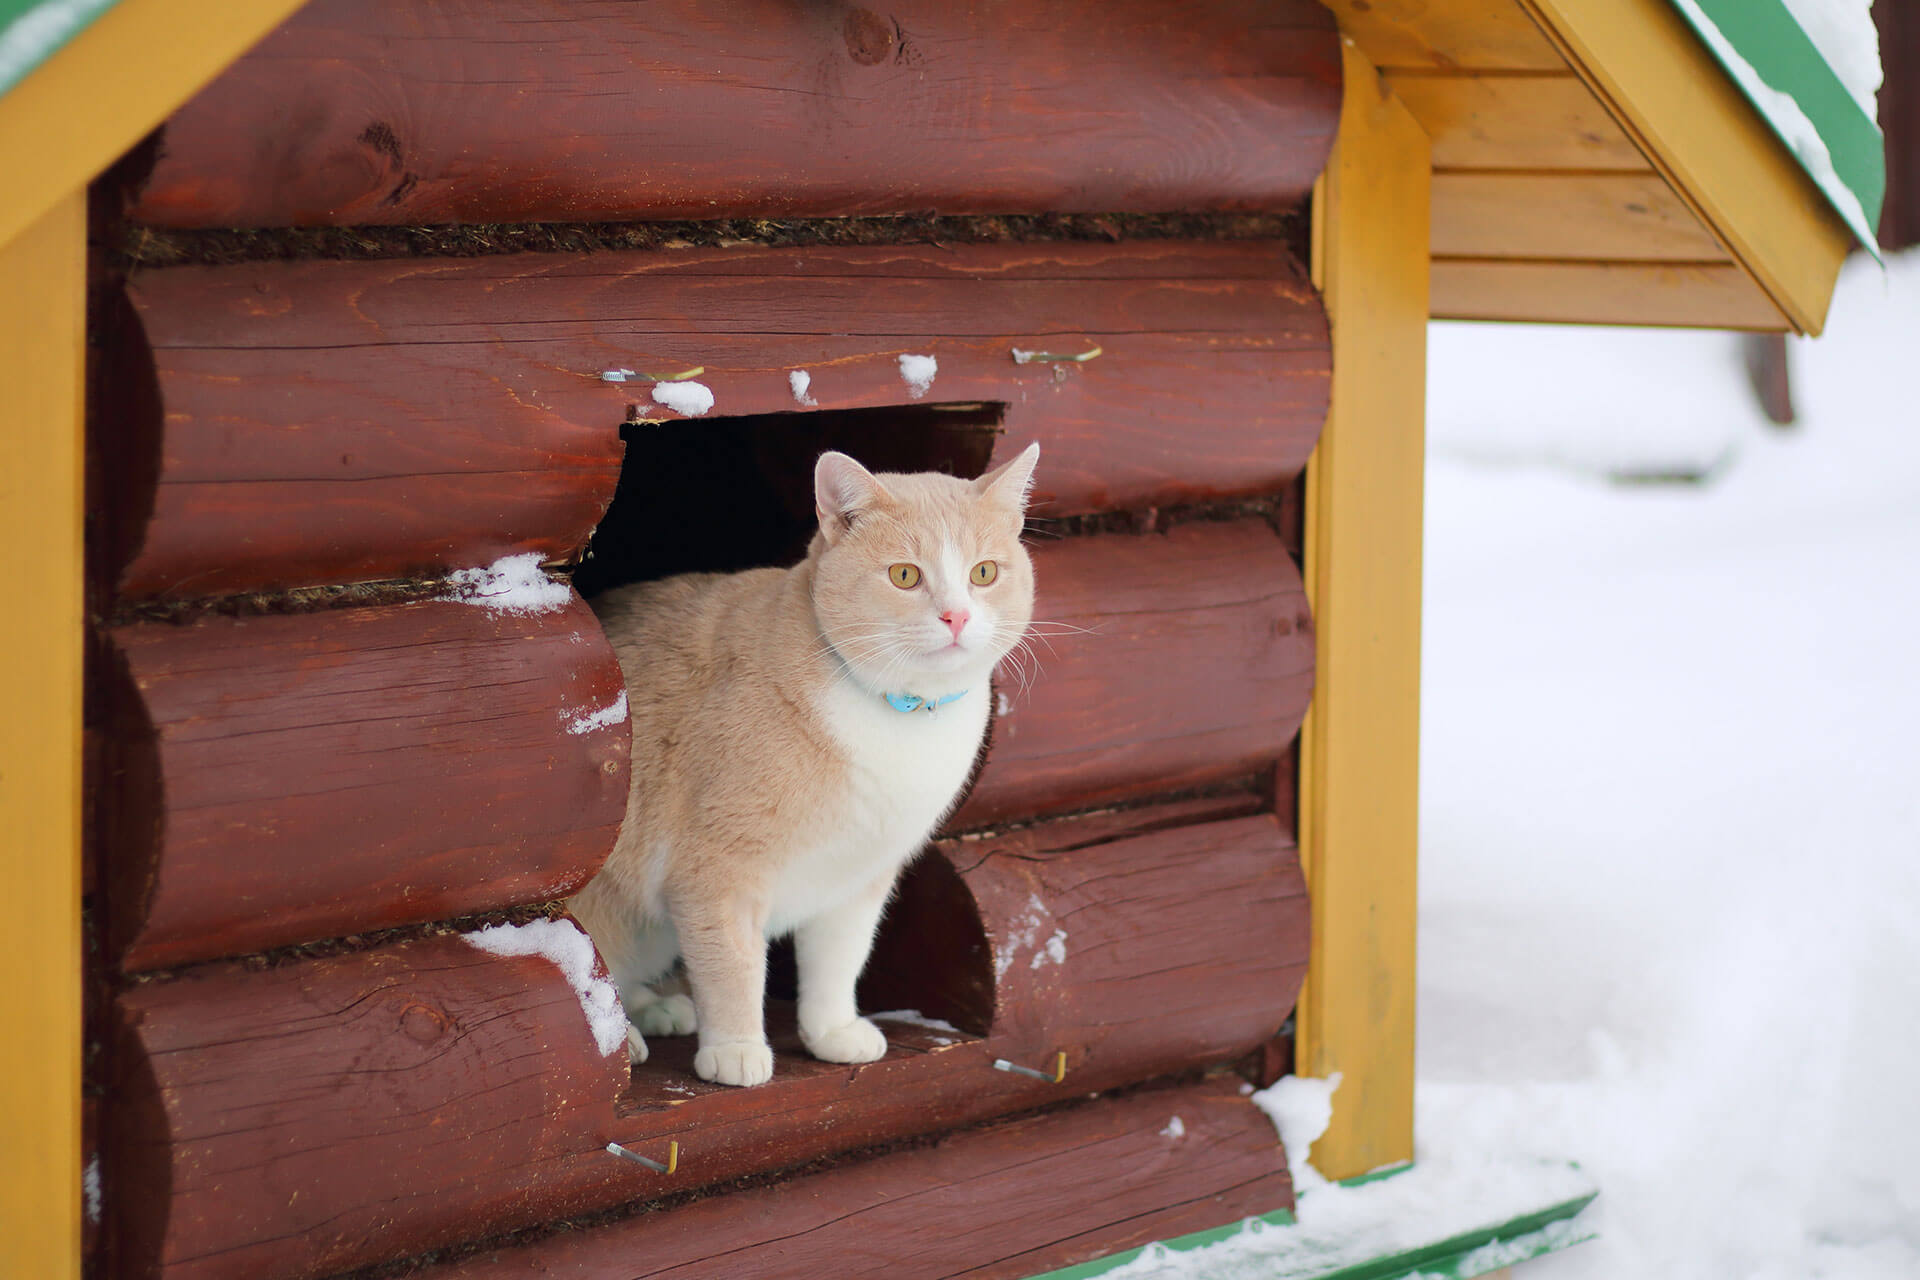 Build your own heated outdoor cat house in 3 easy steps